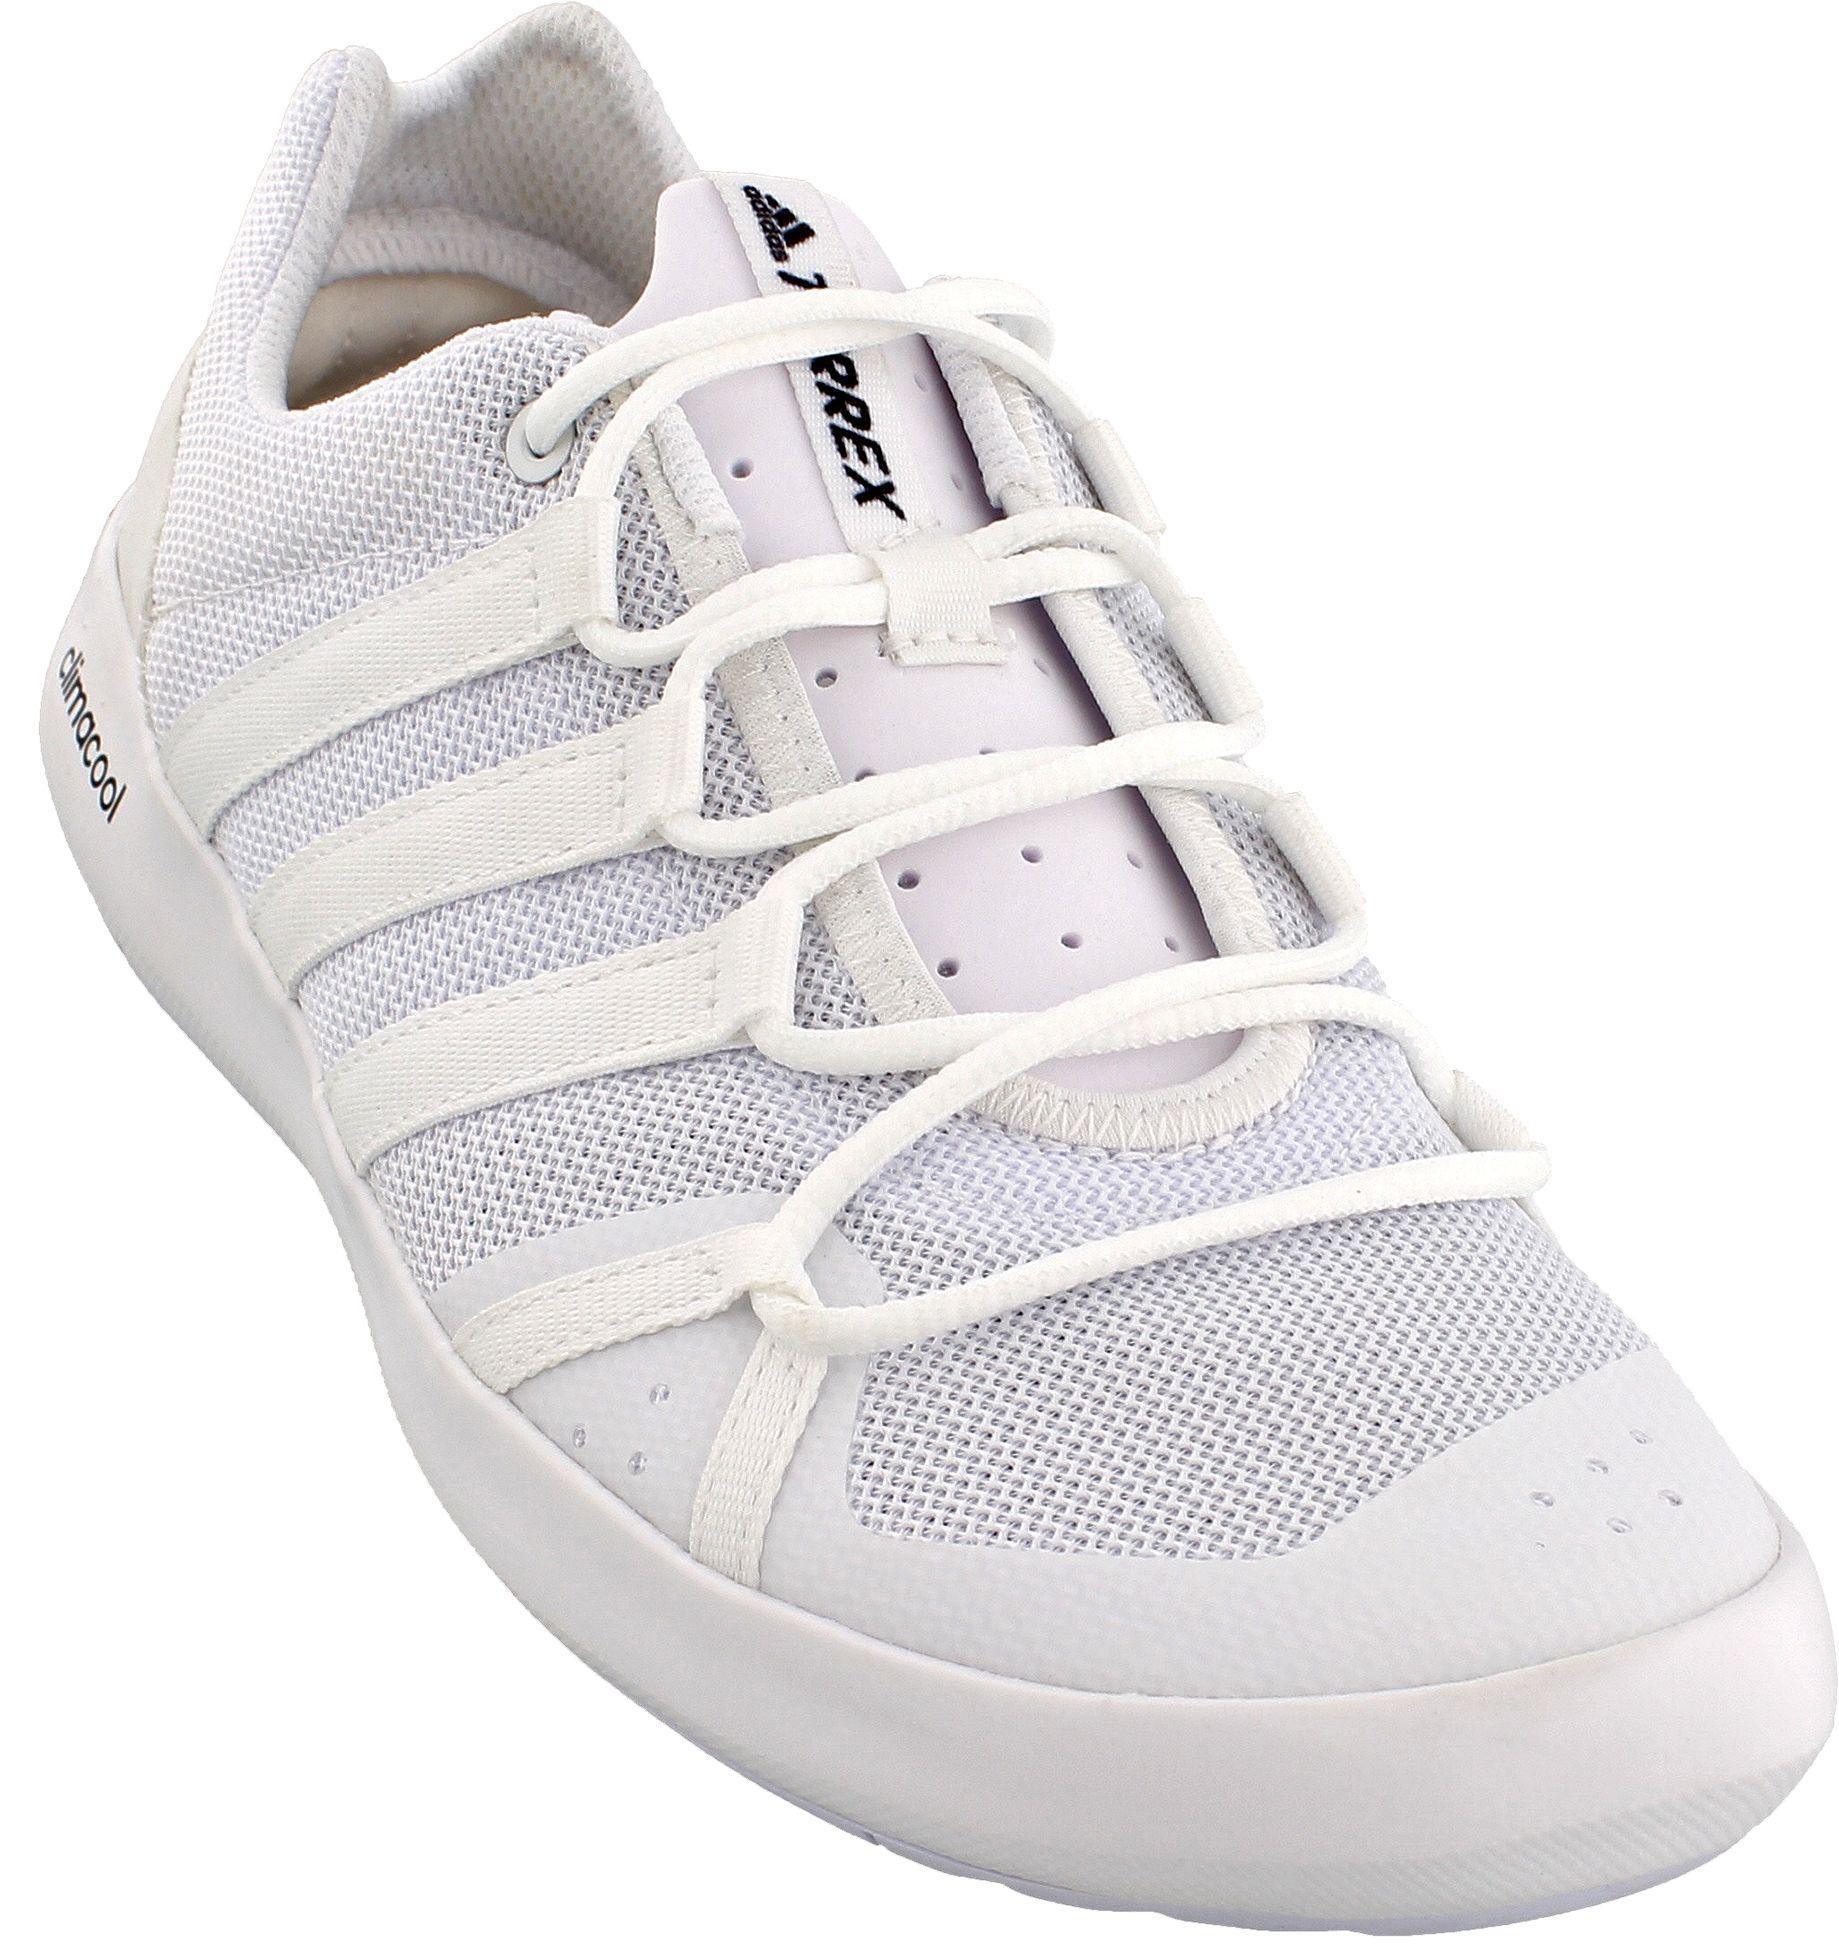 super popular f6756 bc9d7 Men's White Outdoor Terrex Climacool Boat Sleek Water Shoes